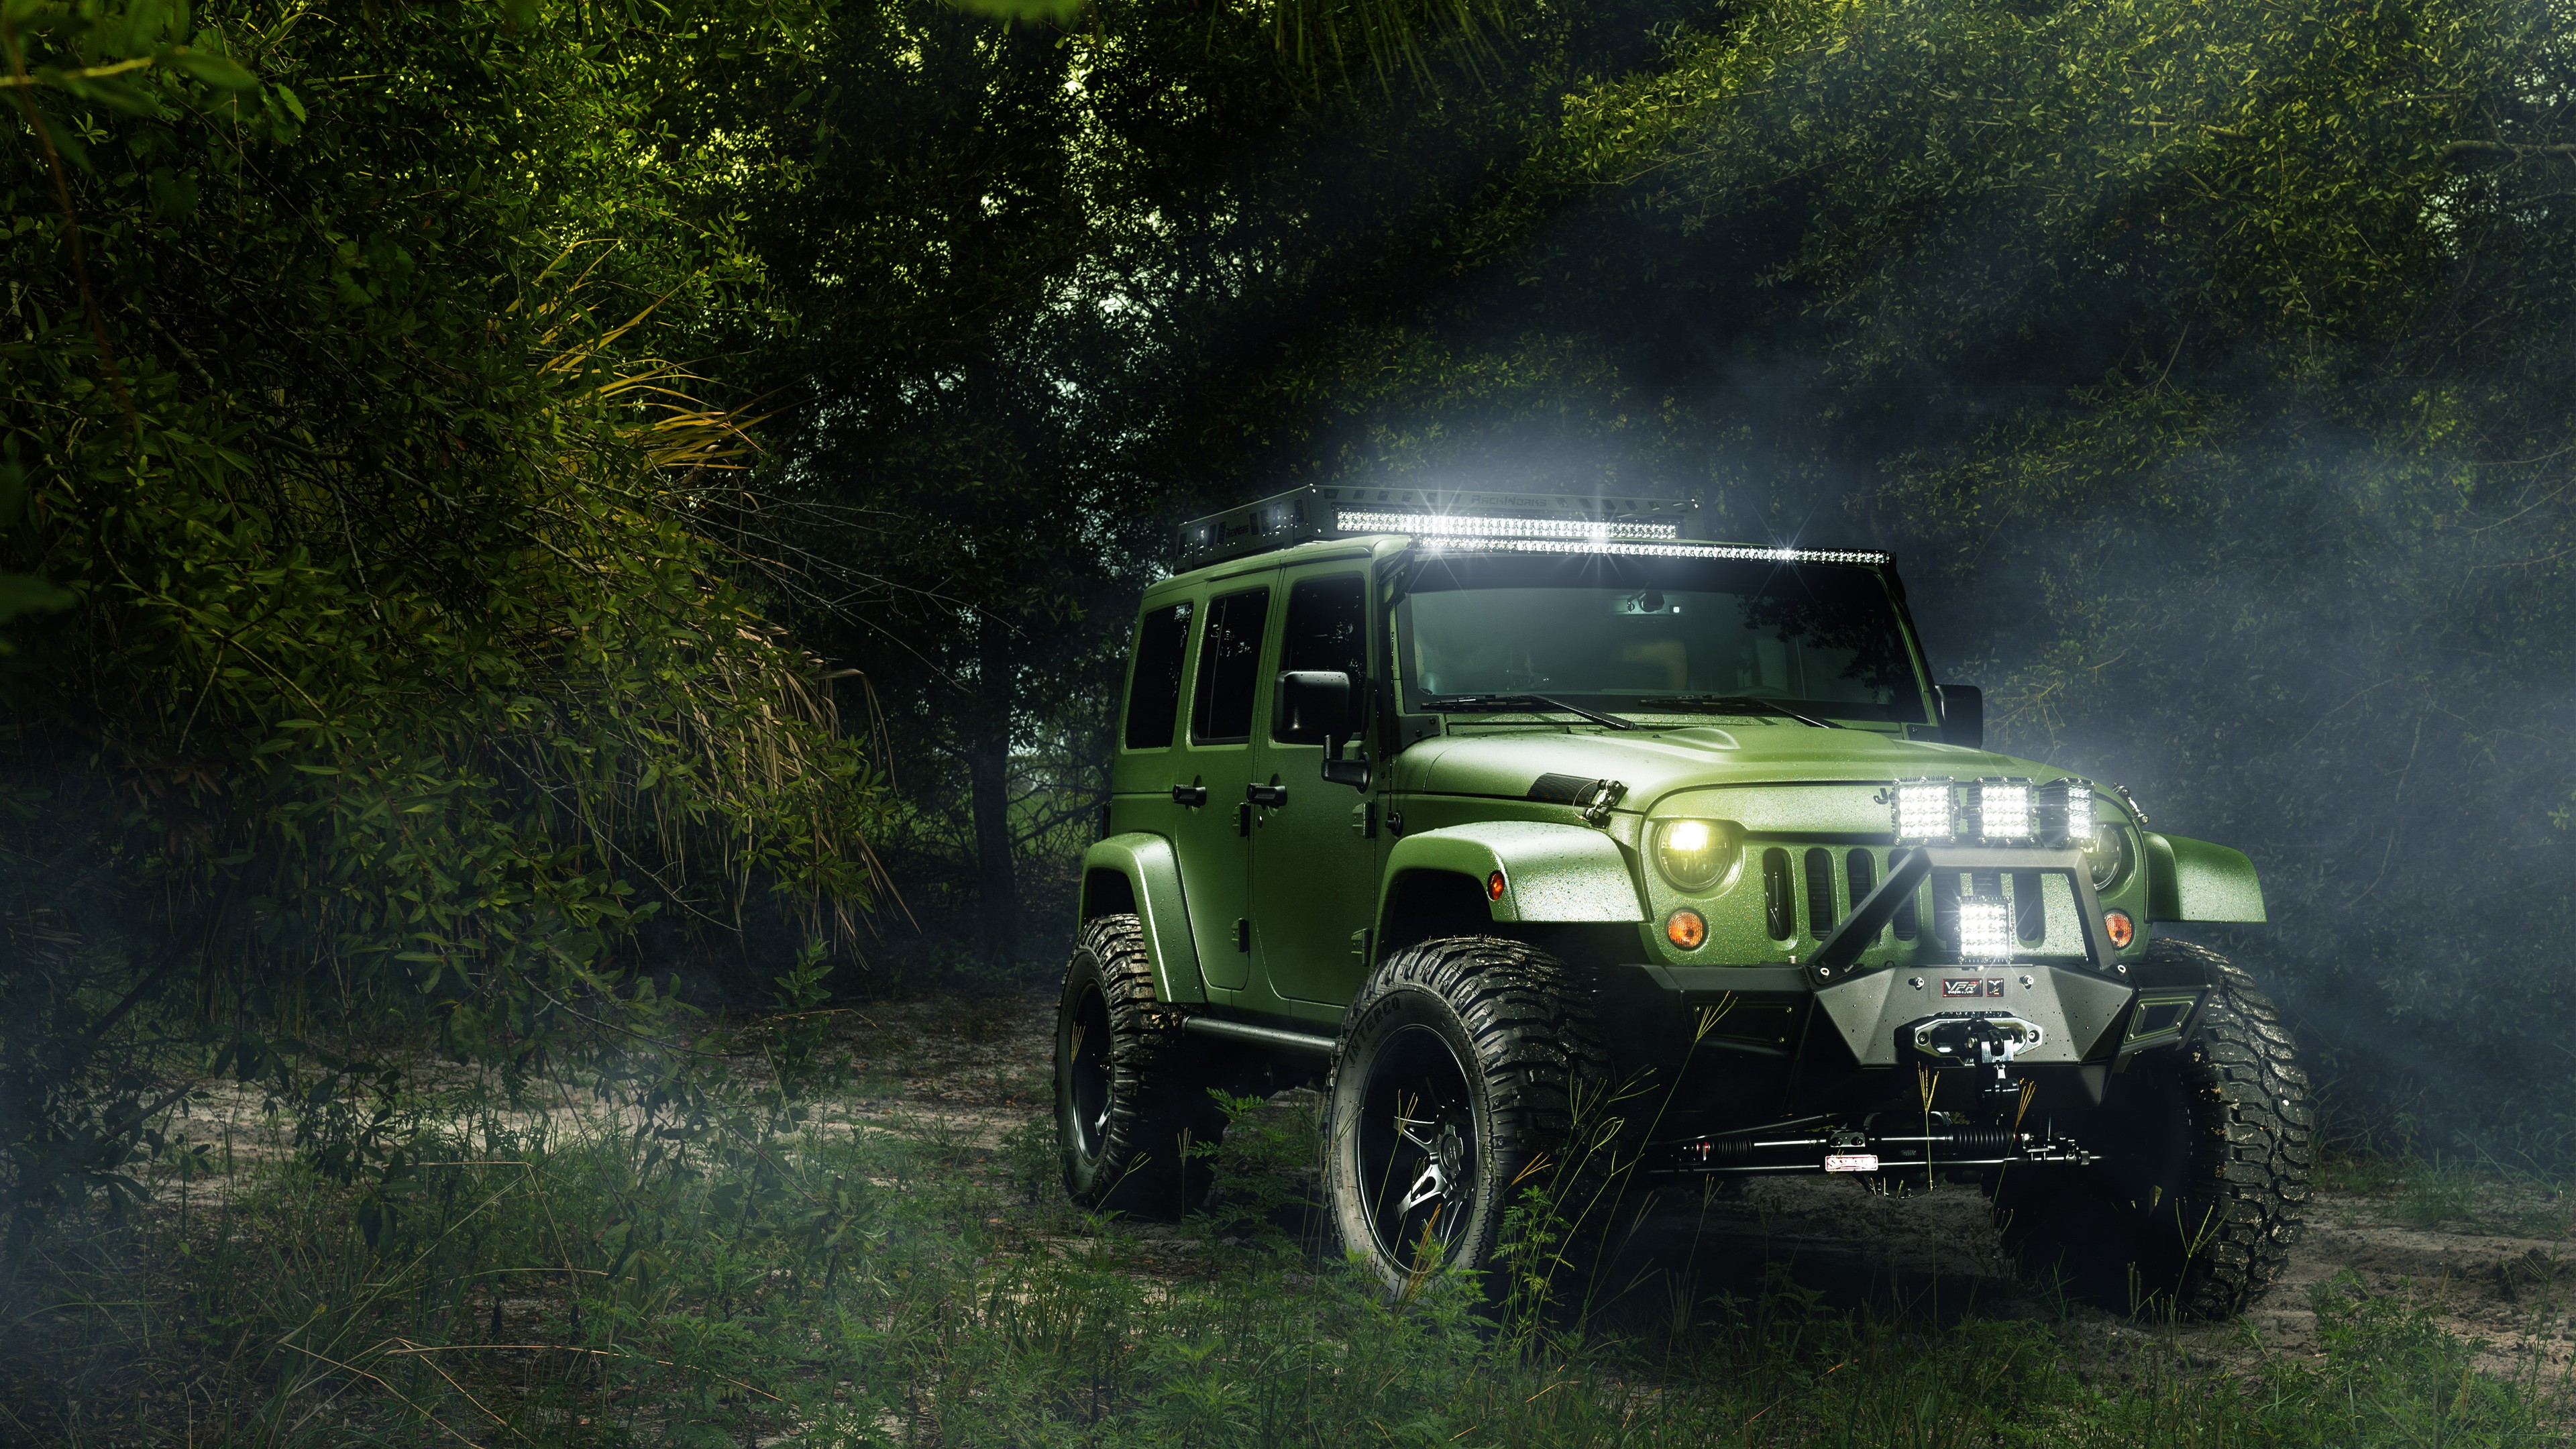 Off Road Jeep Hd Wallpaper >> Jeep Wrangler Wallpaper | HD Car Wallpapers | ID #5570